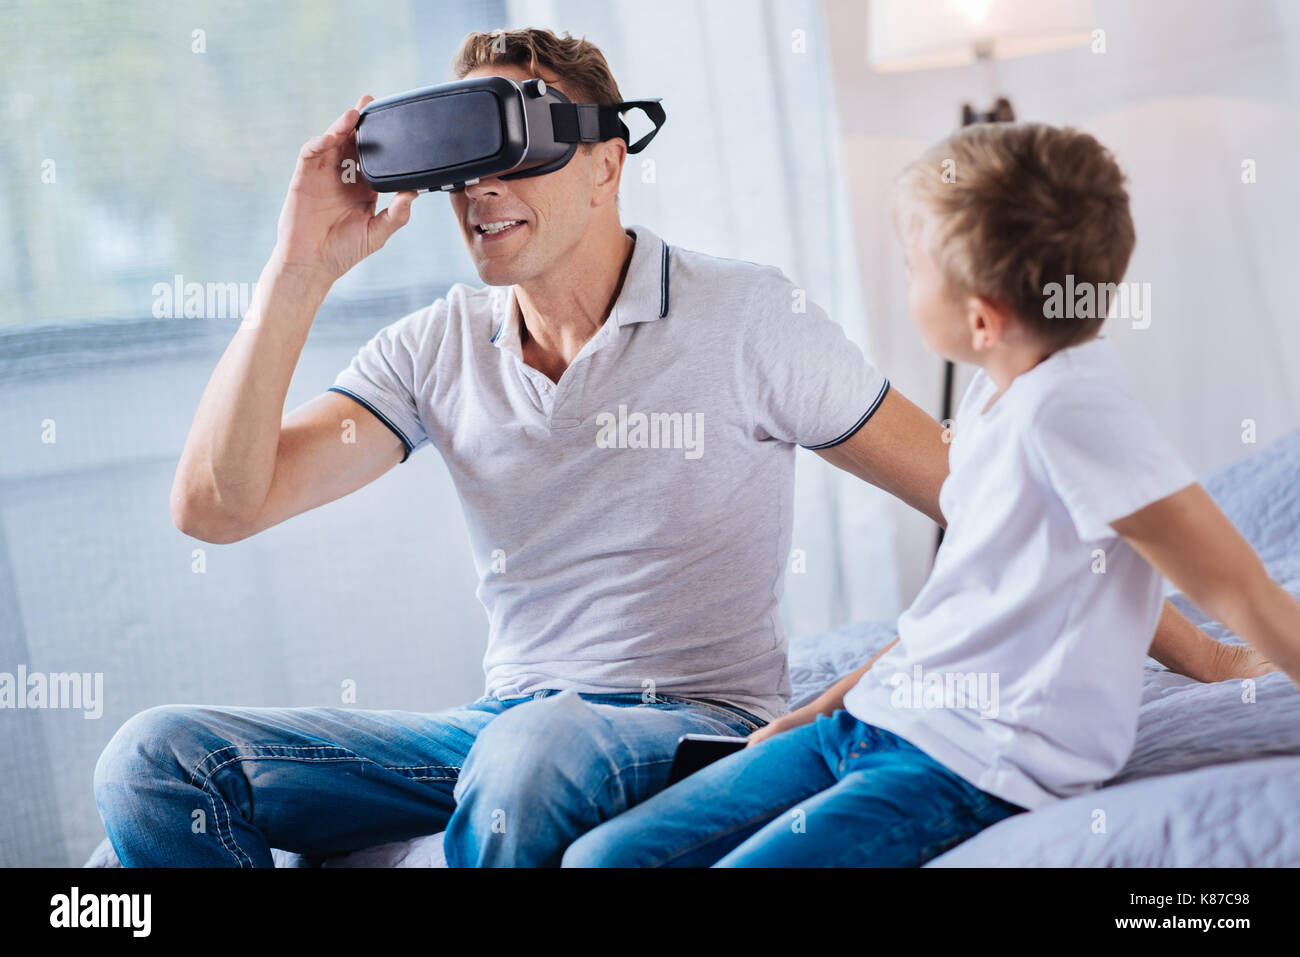 Pre-teen son watching his father test VR headset - Stock Image